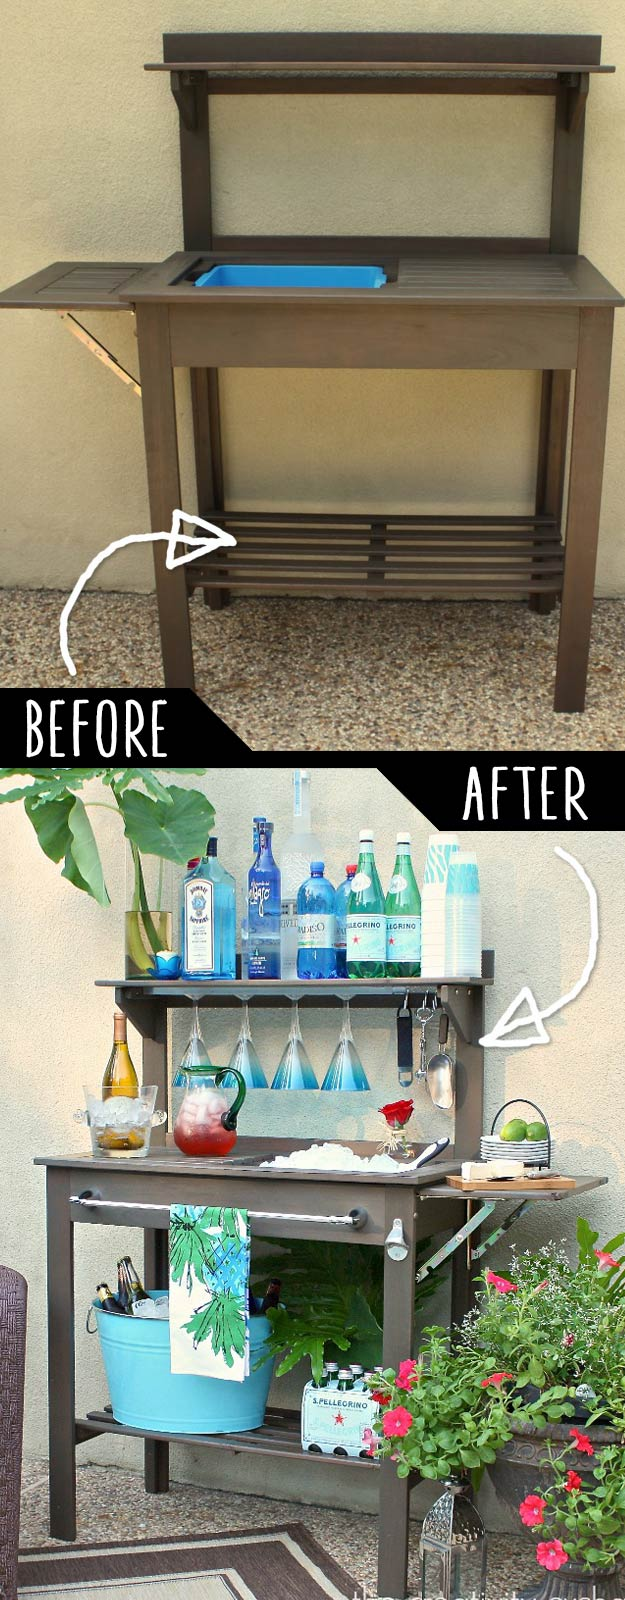 DIY Furniture Hacks | Potting Bench Turned Outdoor Bar | Cool Ideas for Creative Do It Yourself Furniture Made From Things You Might Not Expect  #diy